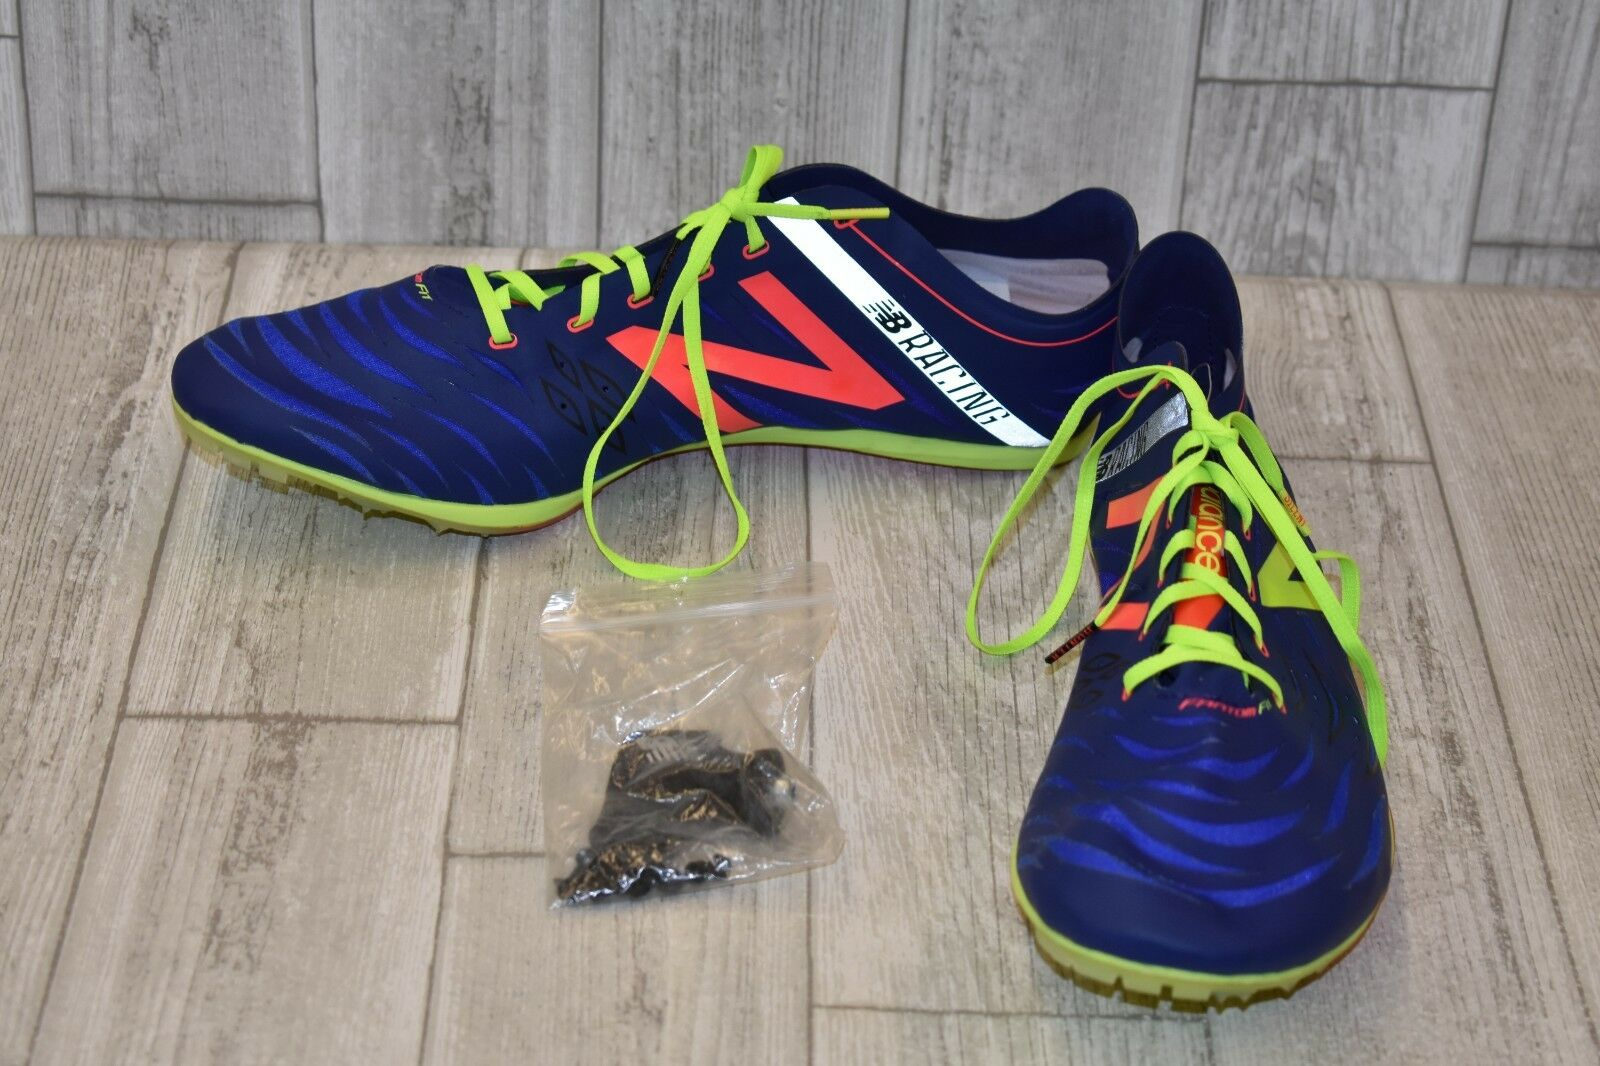 New Balance MD800 v4 Spike Racing Racing Racing scarpe, Uomo Dimensione 14D, blu Citron Coral 614be4